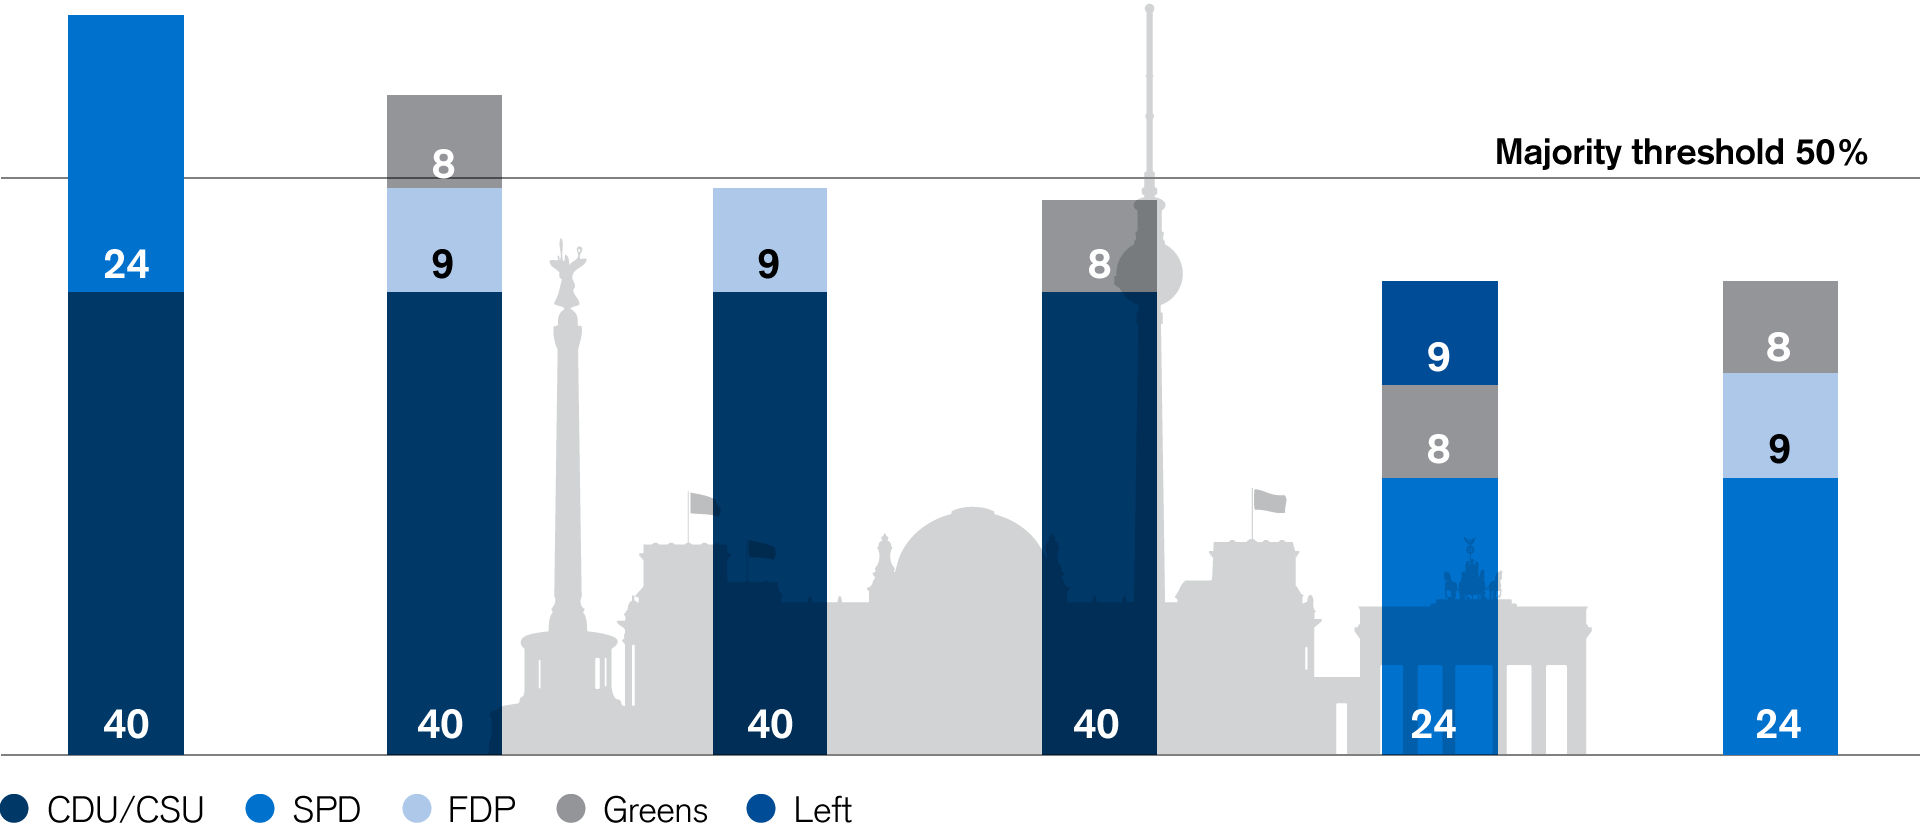 Estimated share of Bundestag seats (percents) based on latest polls